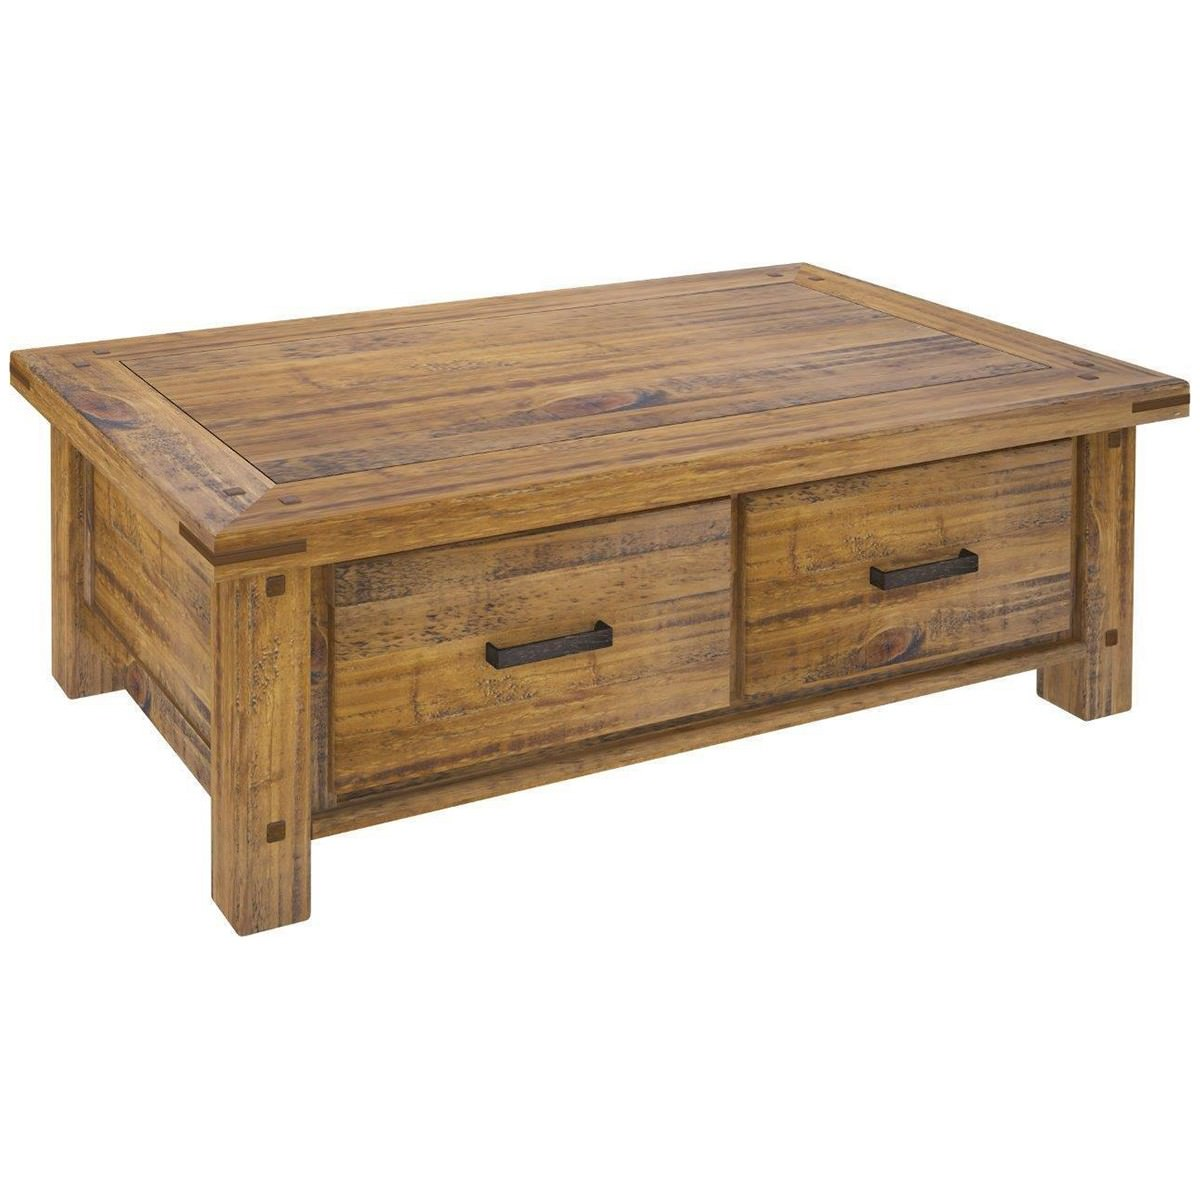 Serafin Rustic Pine Timber 4 Drawer Coffee Table, 140cm